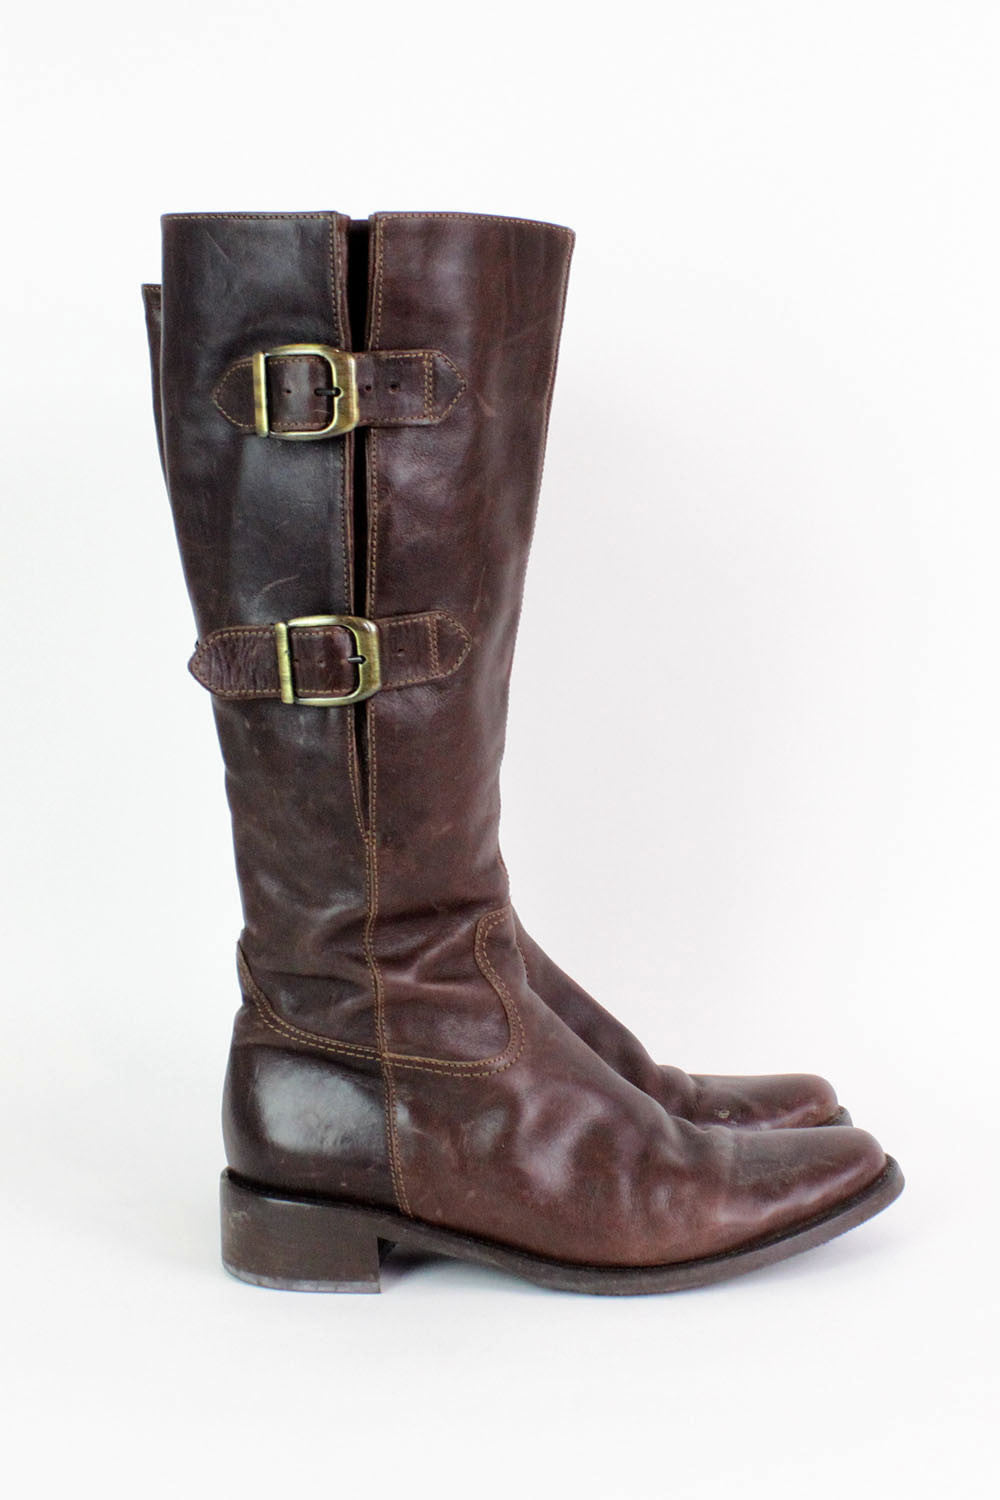 Buckled Leather Boots 8